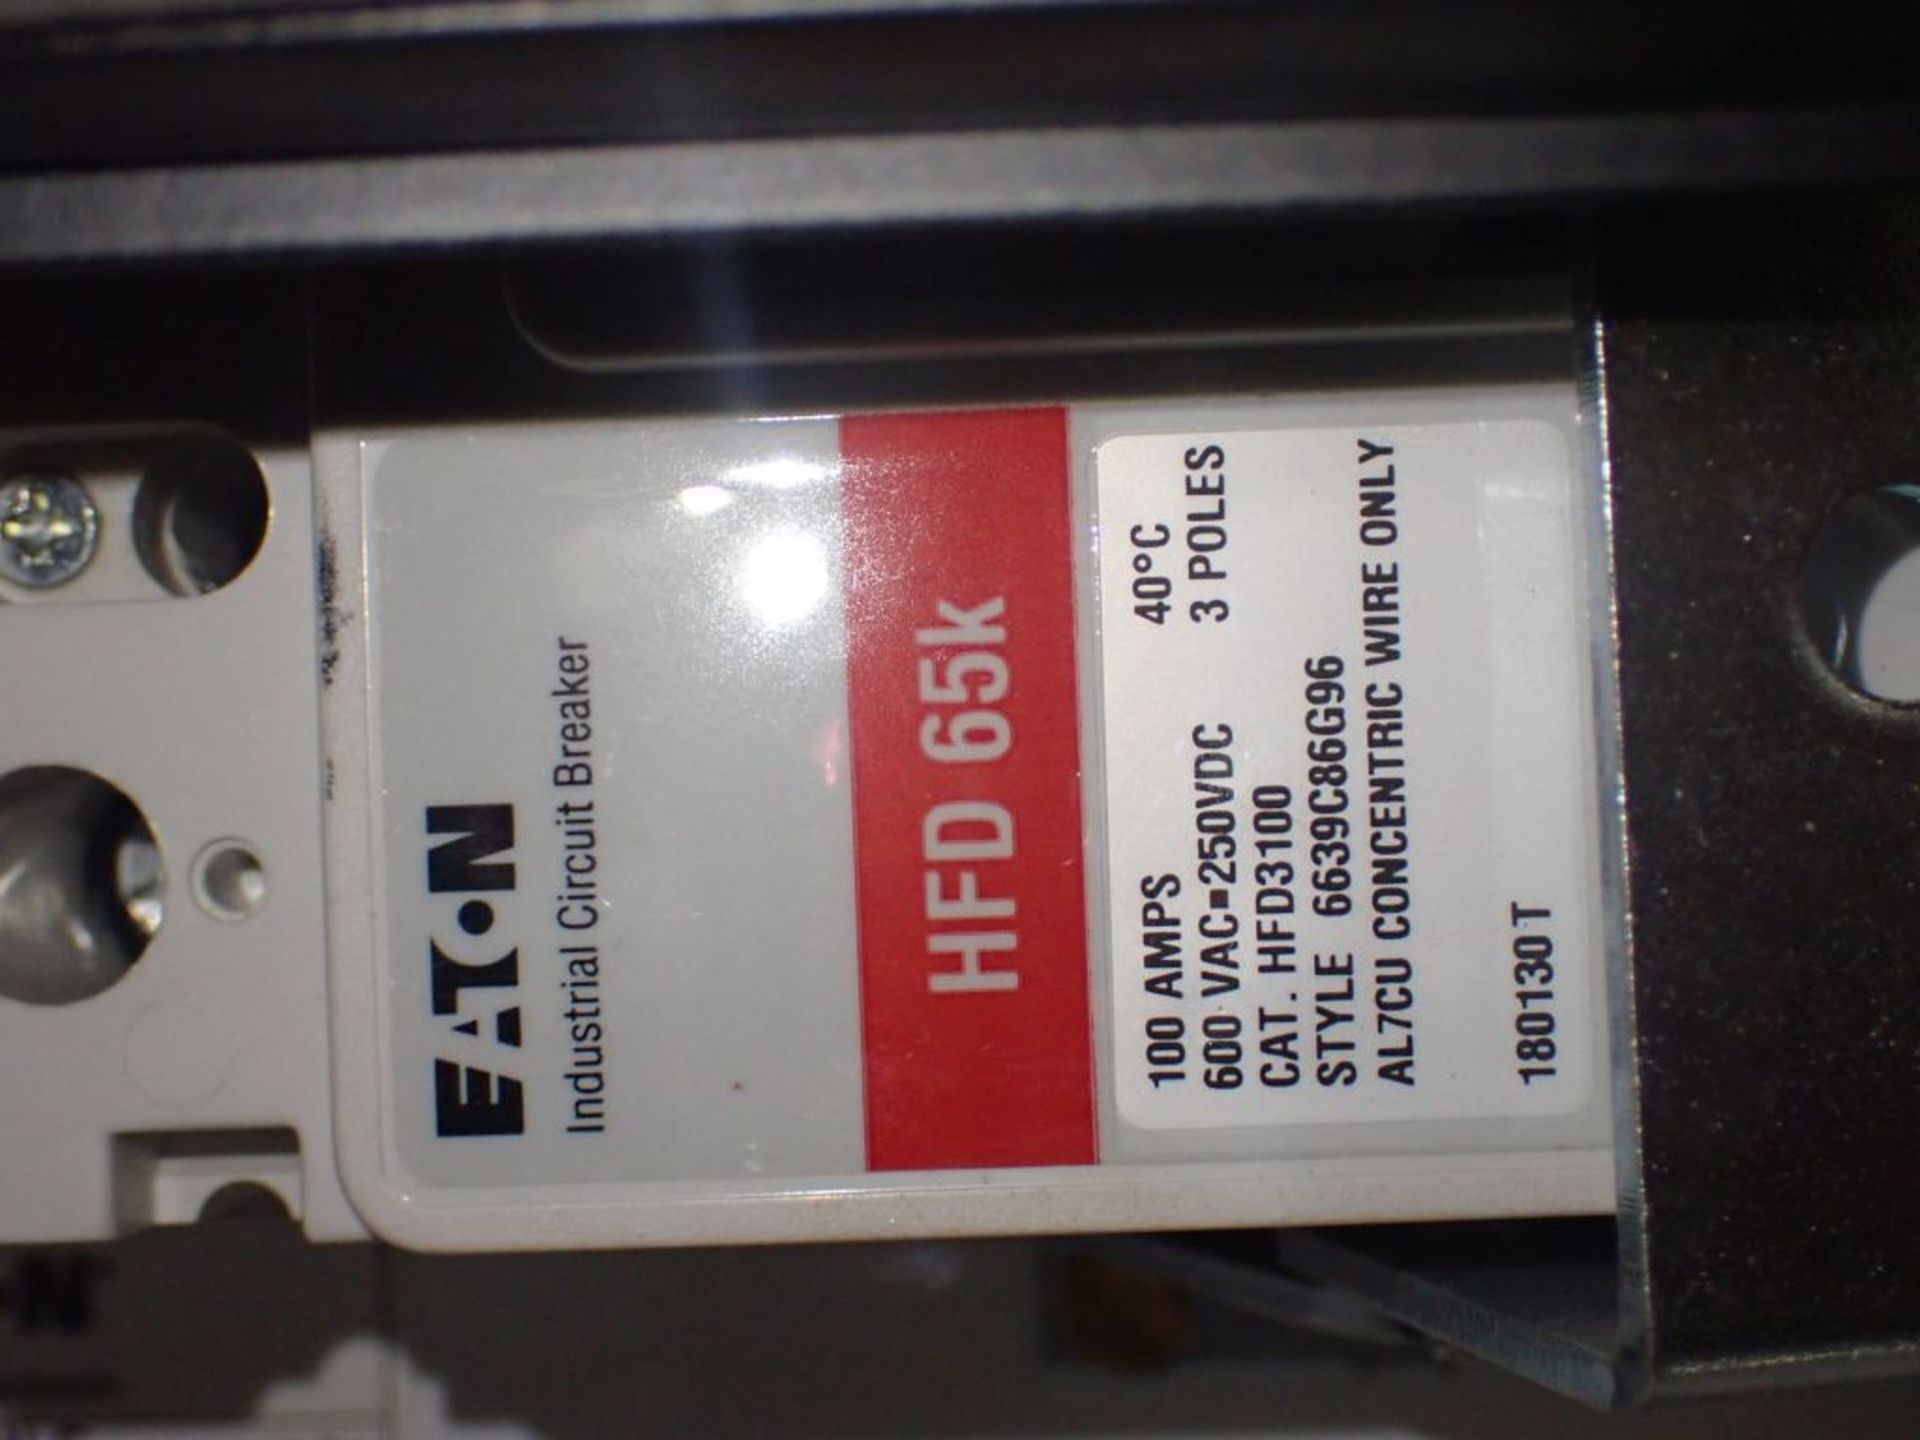 Eaton Freedom Flashgard Motor Control Center   (3) F216-15A-10HP; (1) FDRB-125A, with 150A - Image 37 of 57